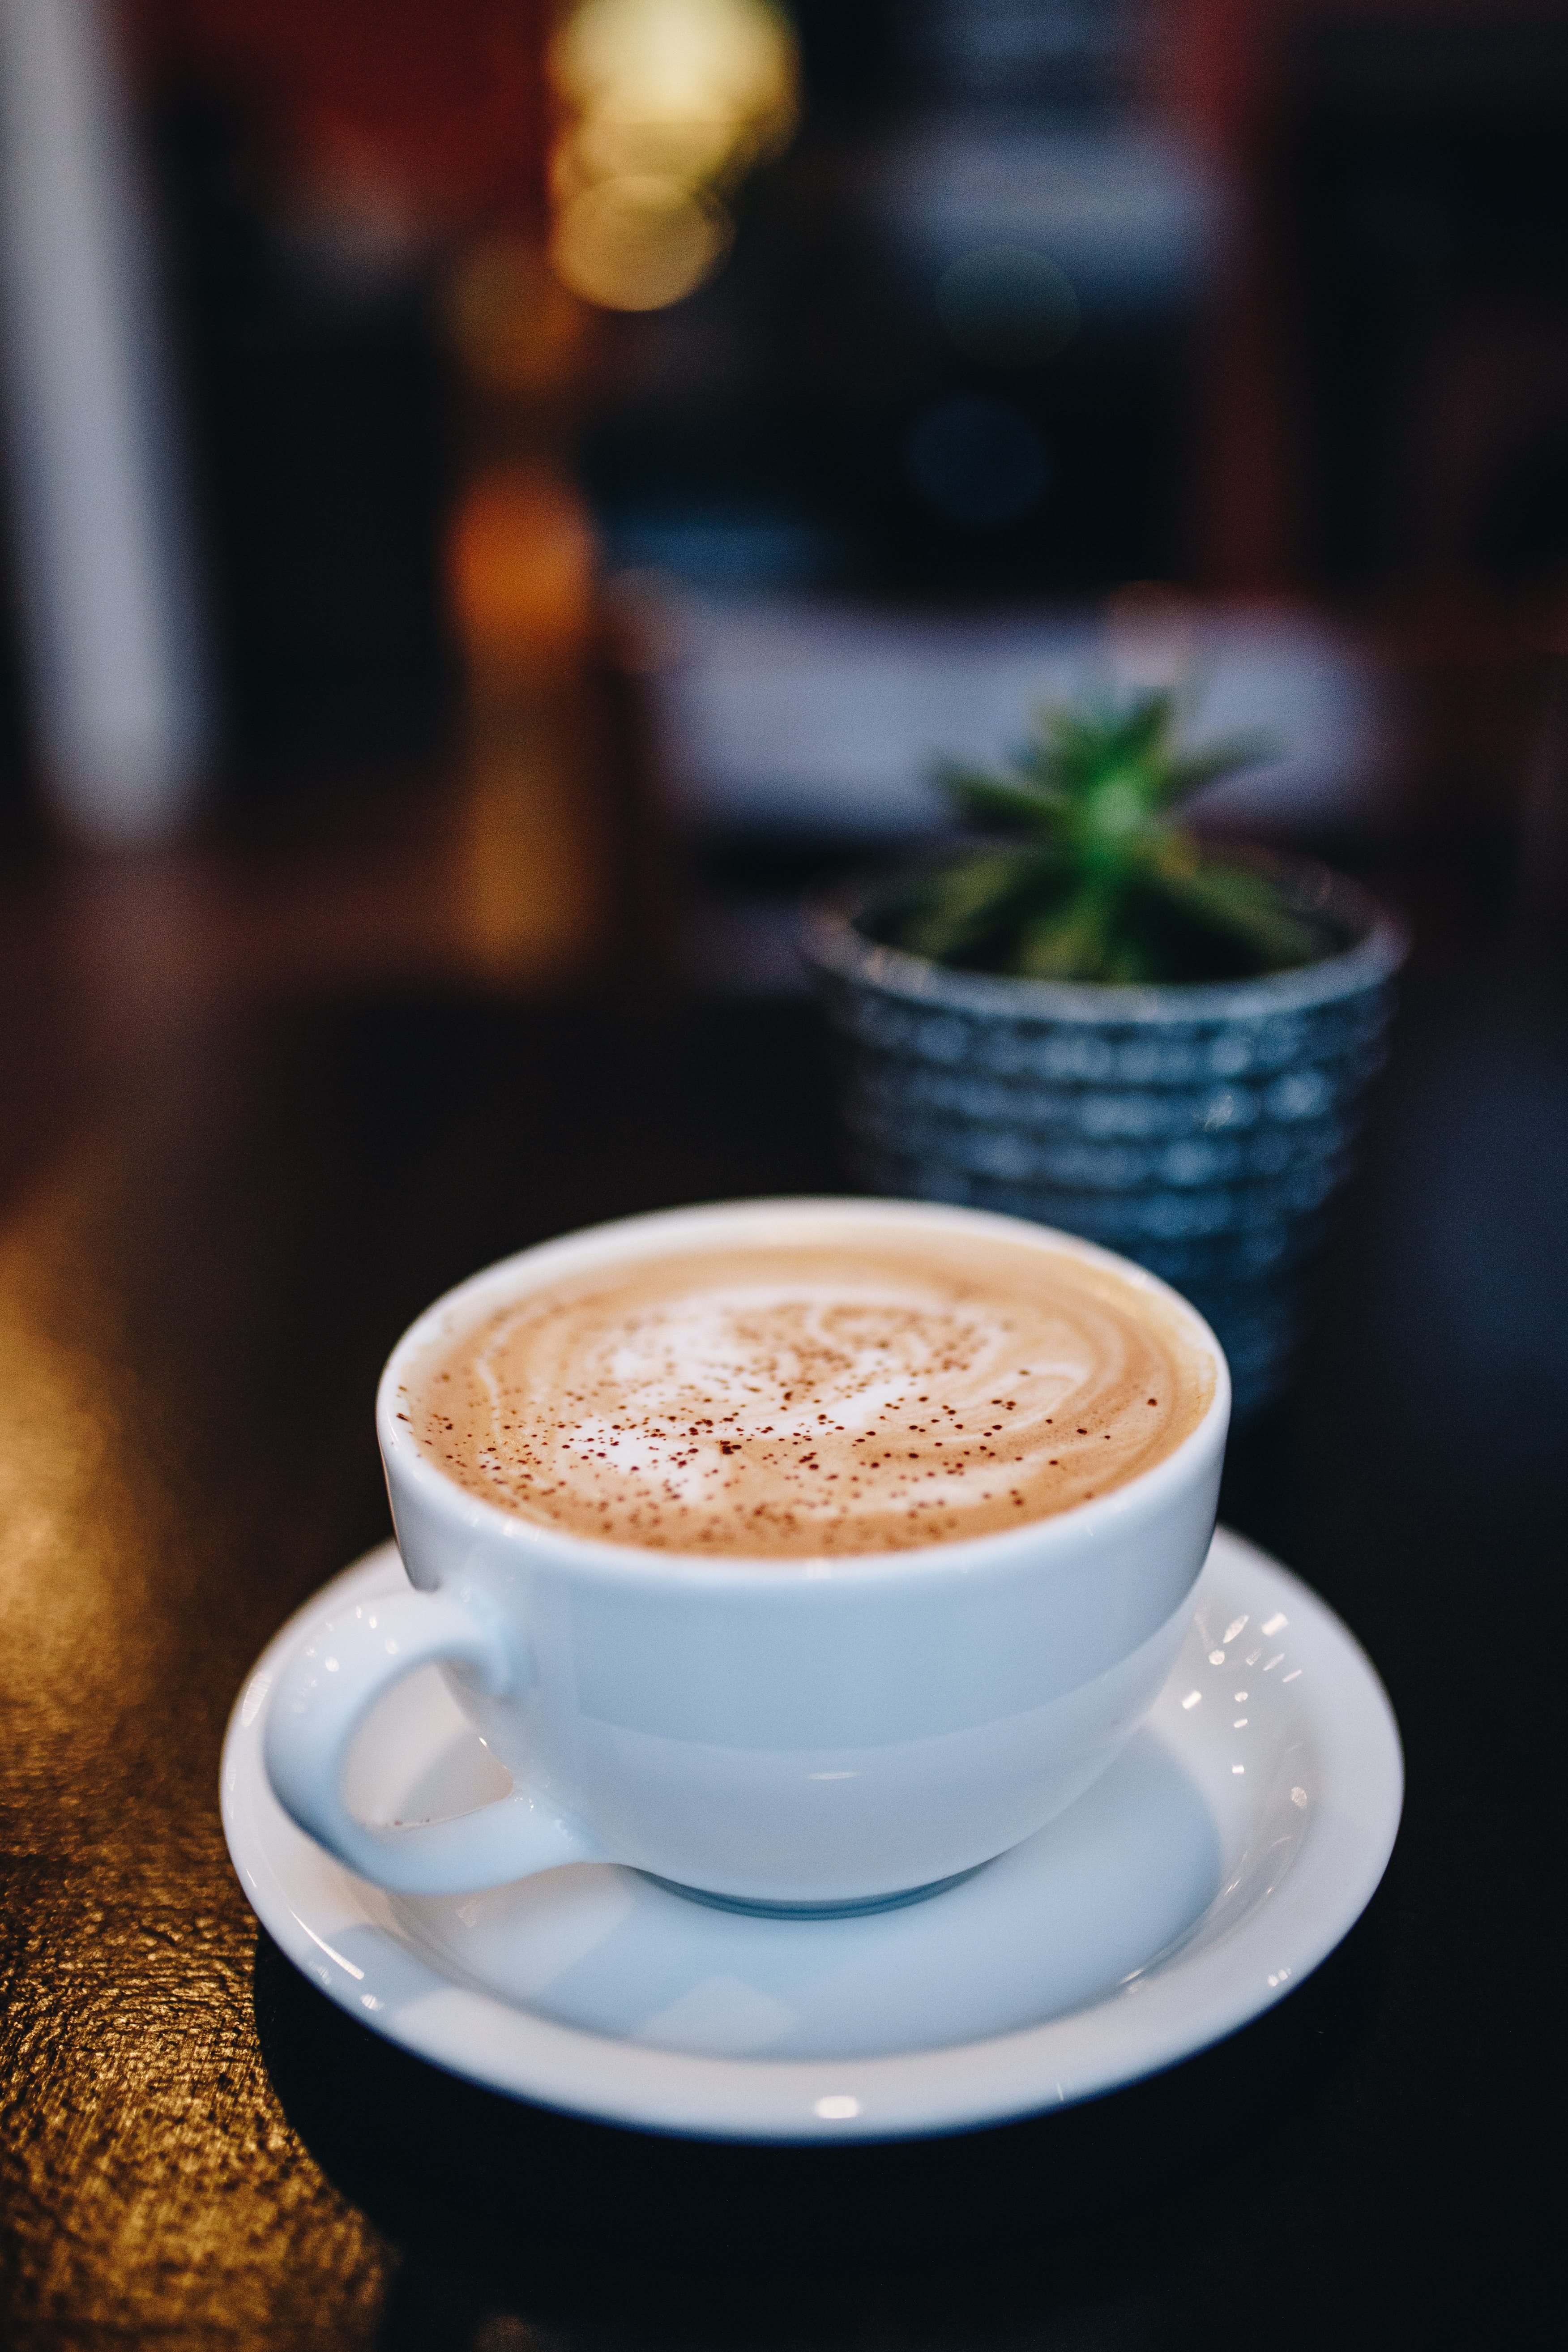 white ceramic teacup on white ceramic saucer filled with coffee in focus photography